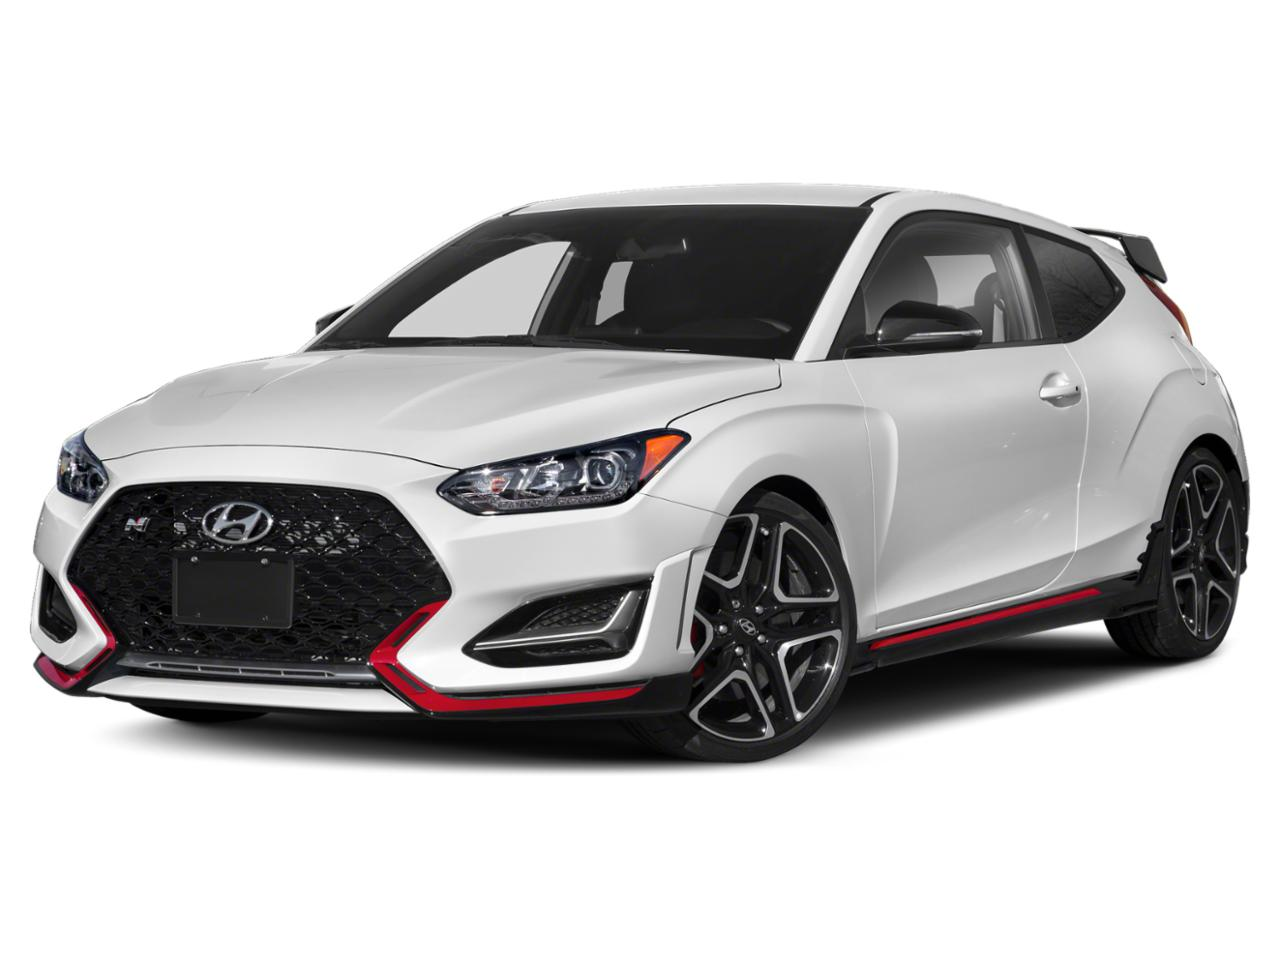 2020 Hyundai Veloster N Vehicle Photo in Peoria, IL 61615